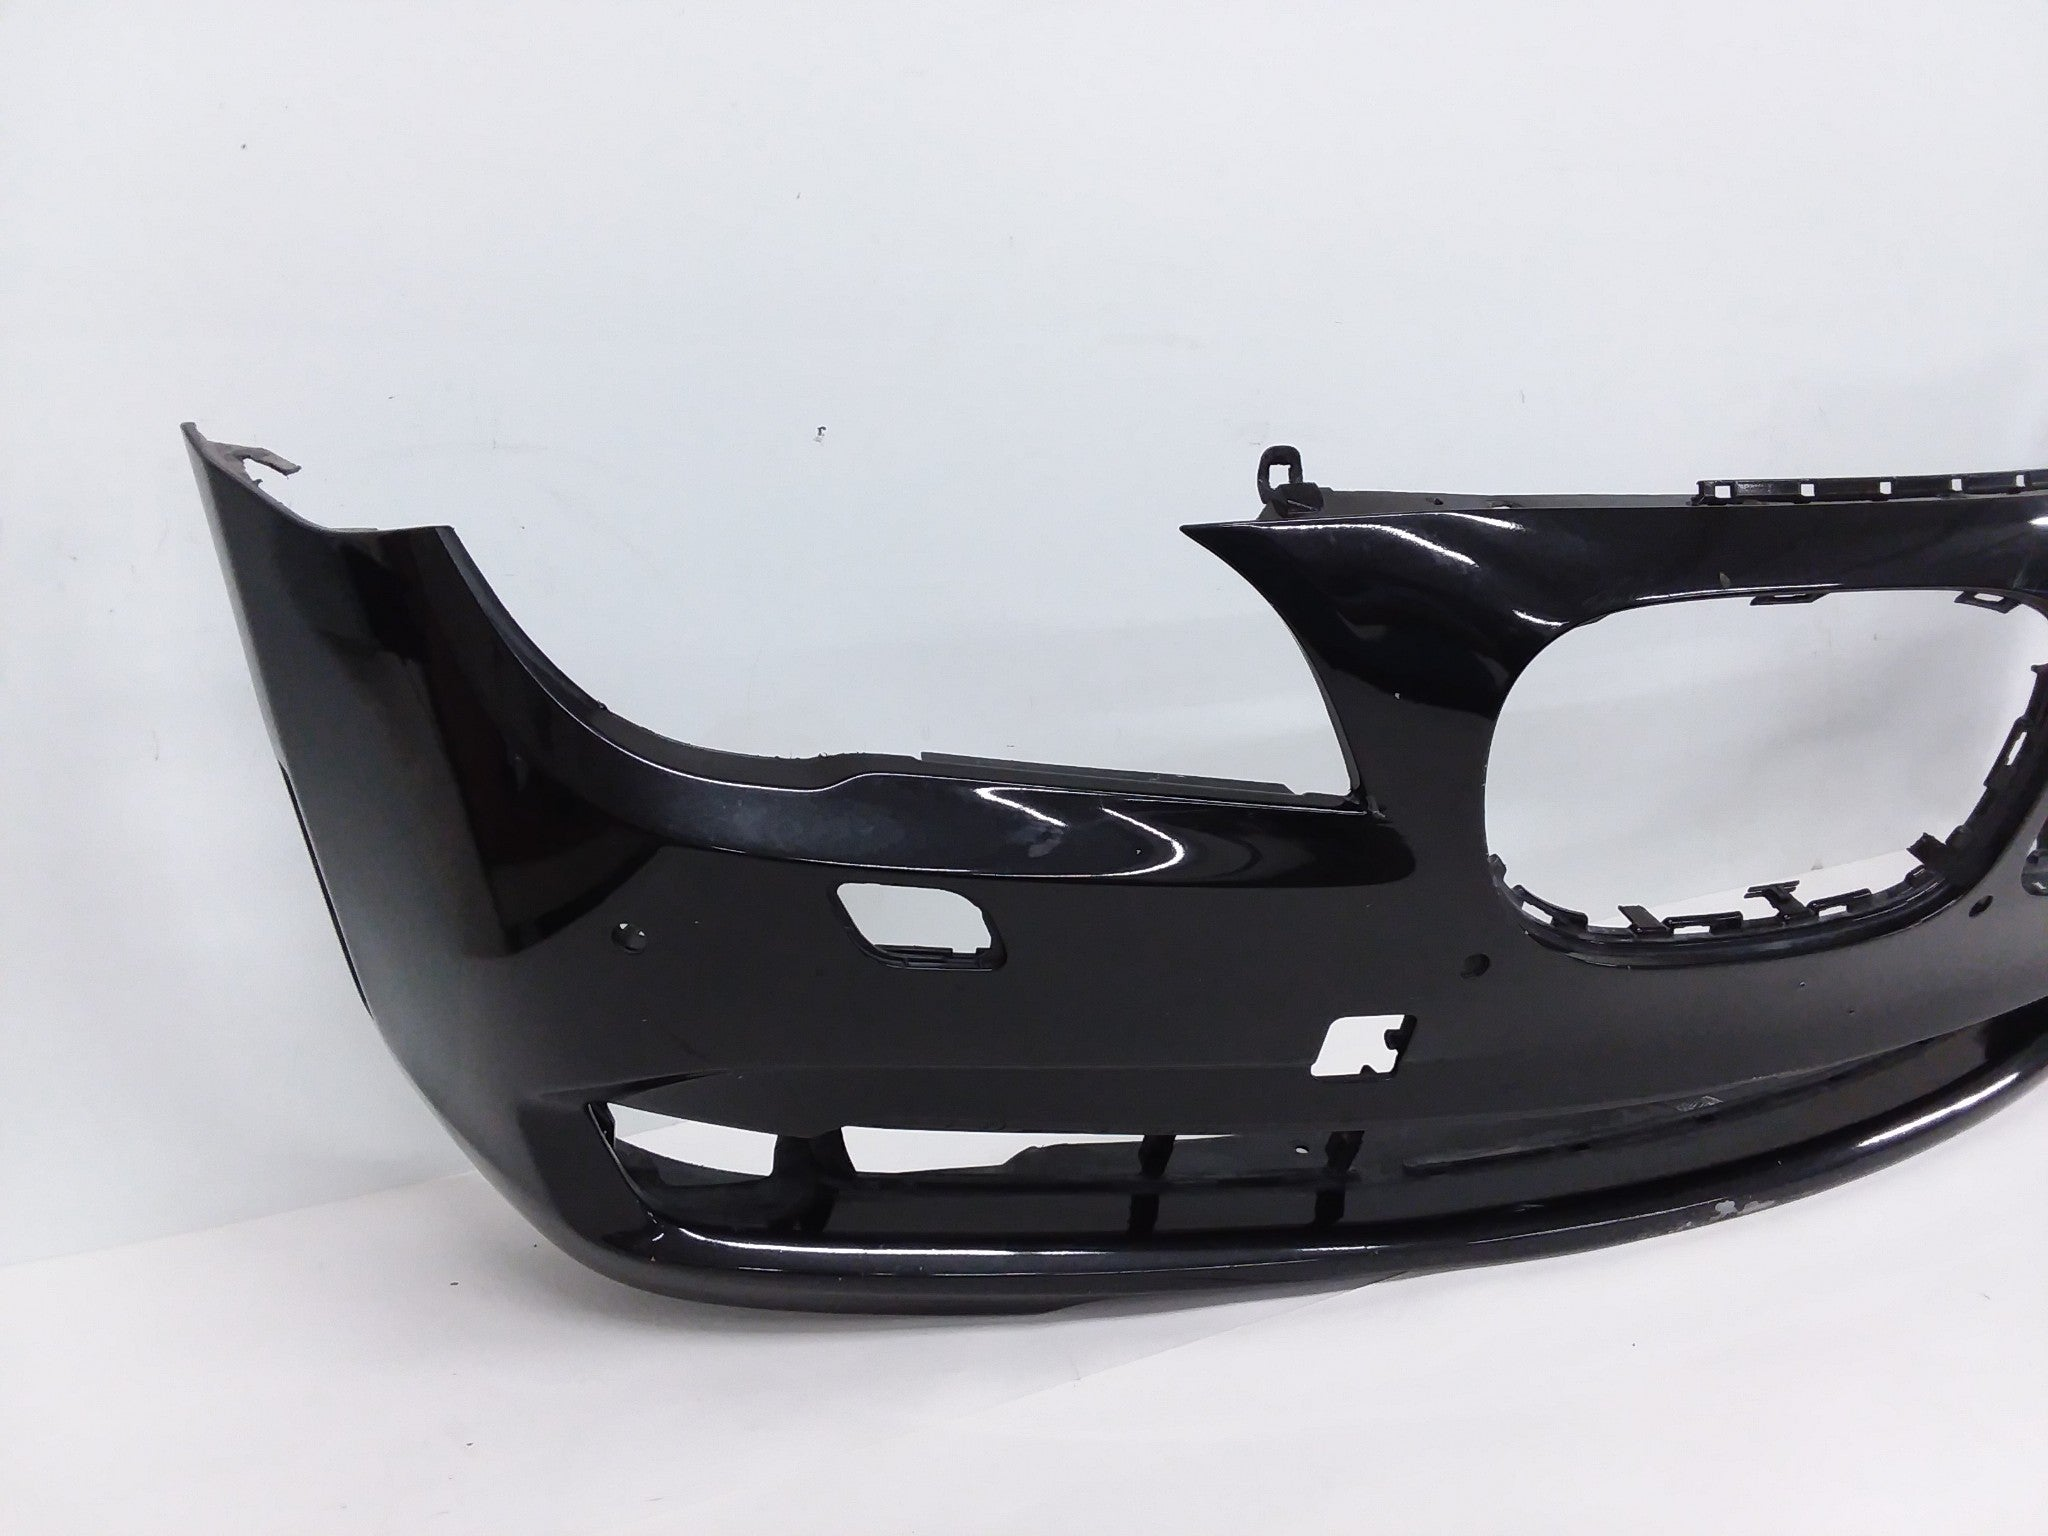 2009 2010 2011 2012 BMW 750LI F01 F02 FRONT BUMPER COVER SOPHISTO GRAY OEM - Click Receive Auto Parts